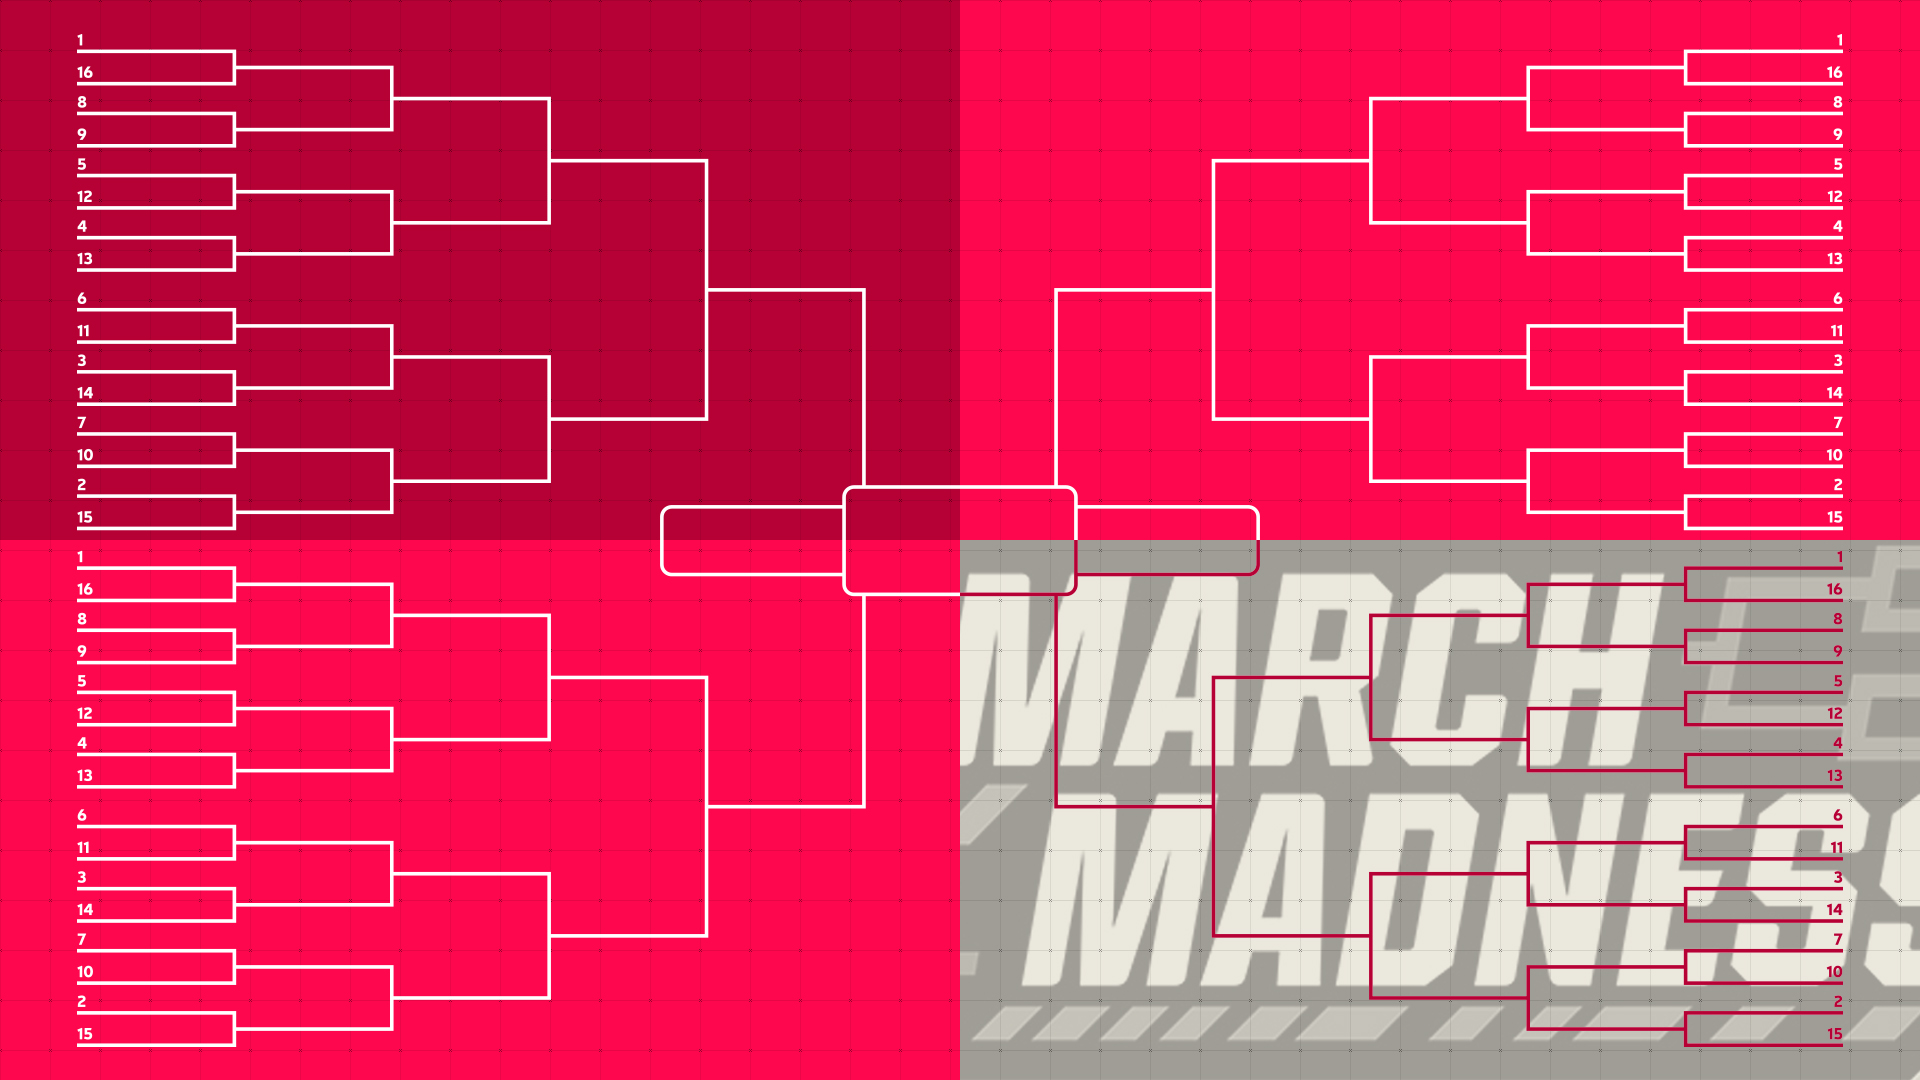 picture about Printable March Madness Bracket titled March Insanity 2019 bracket: Printable NCAA Match